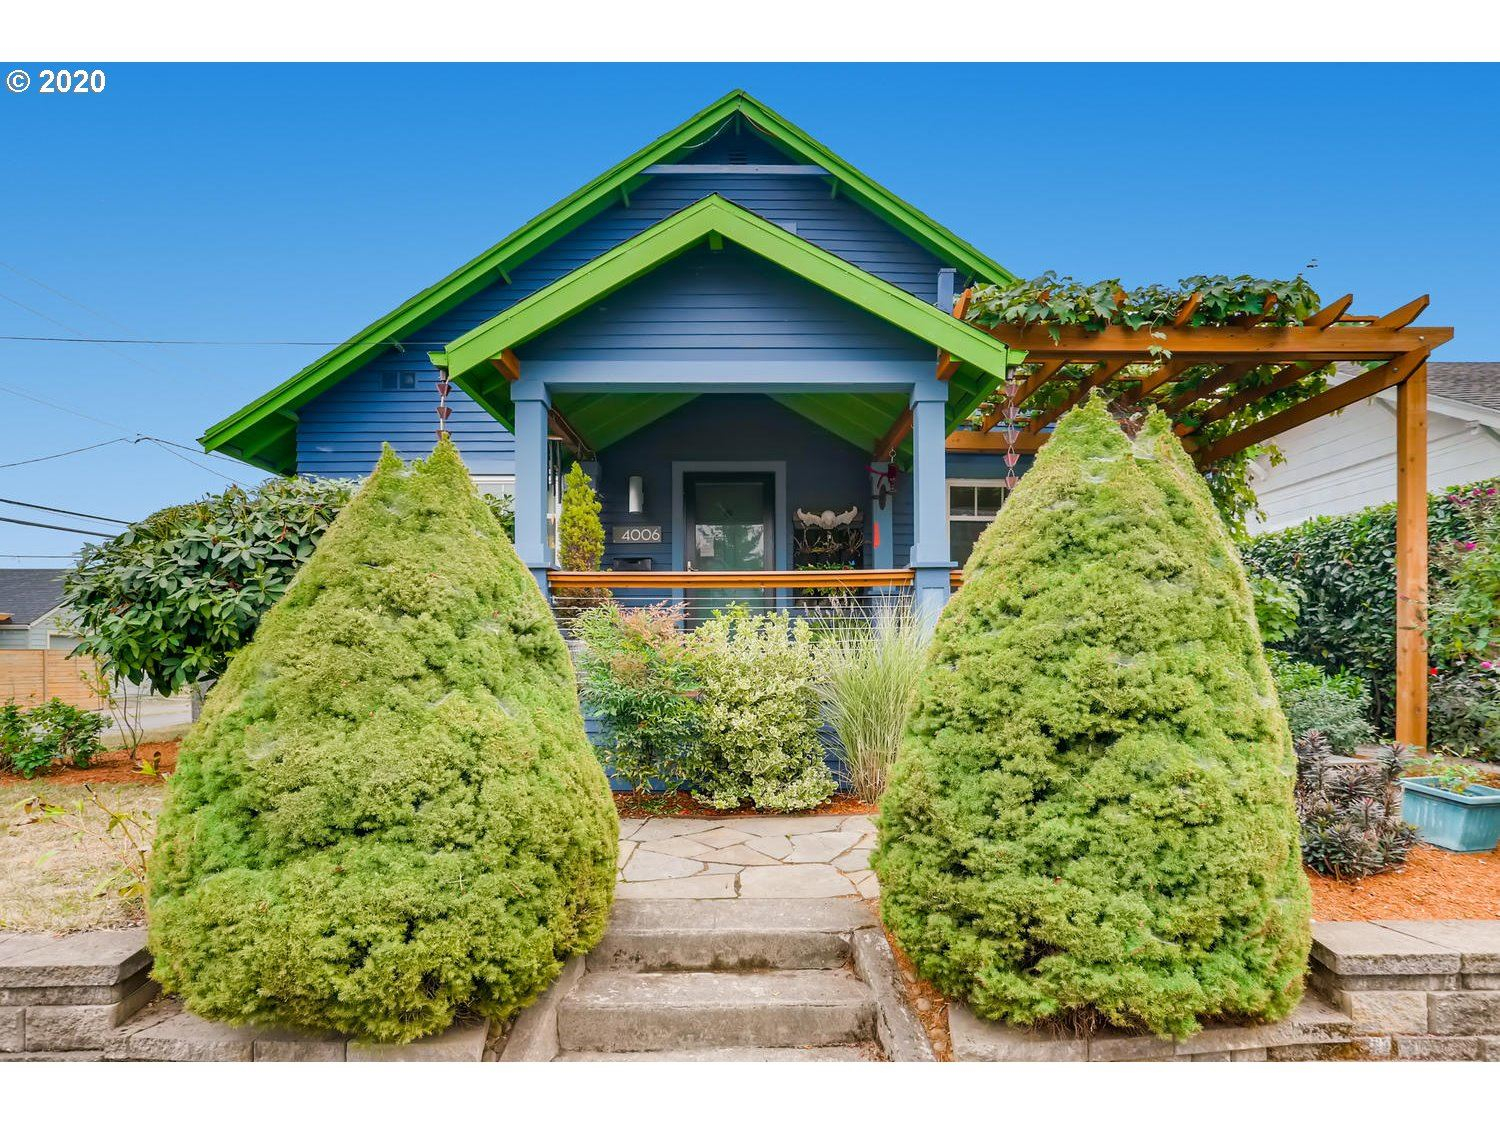 4006 SE 70TH AVE, Portland, OR 97206 - MLS#: 20590790